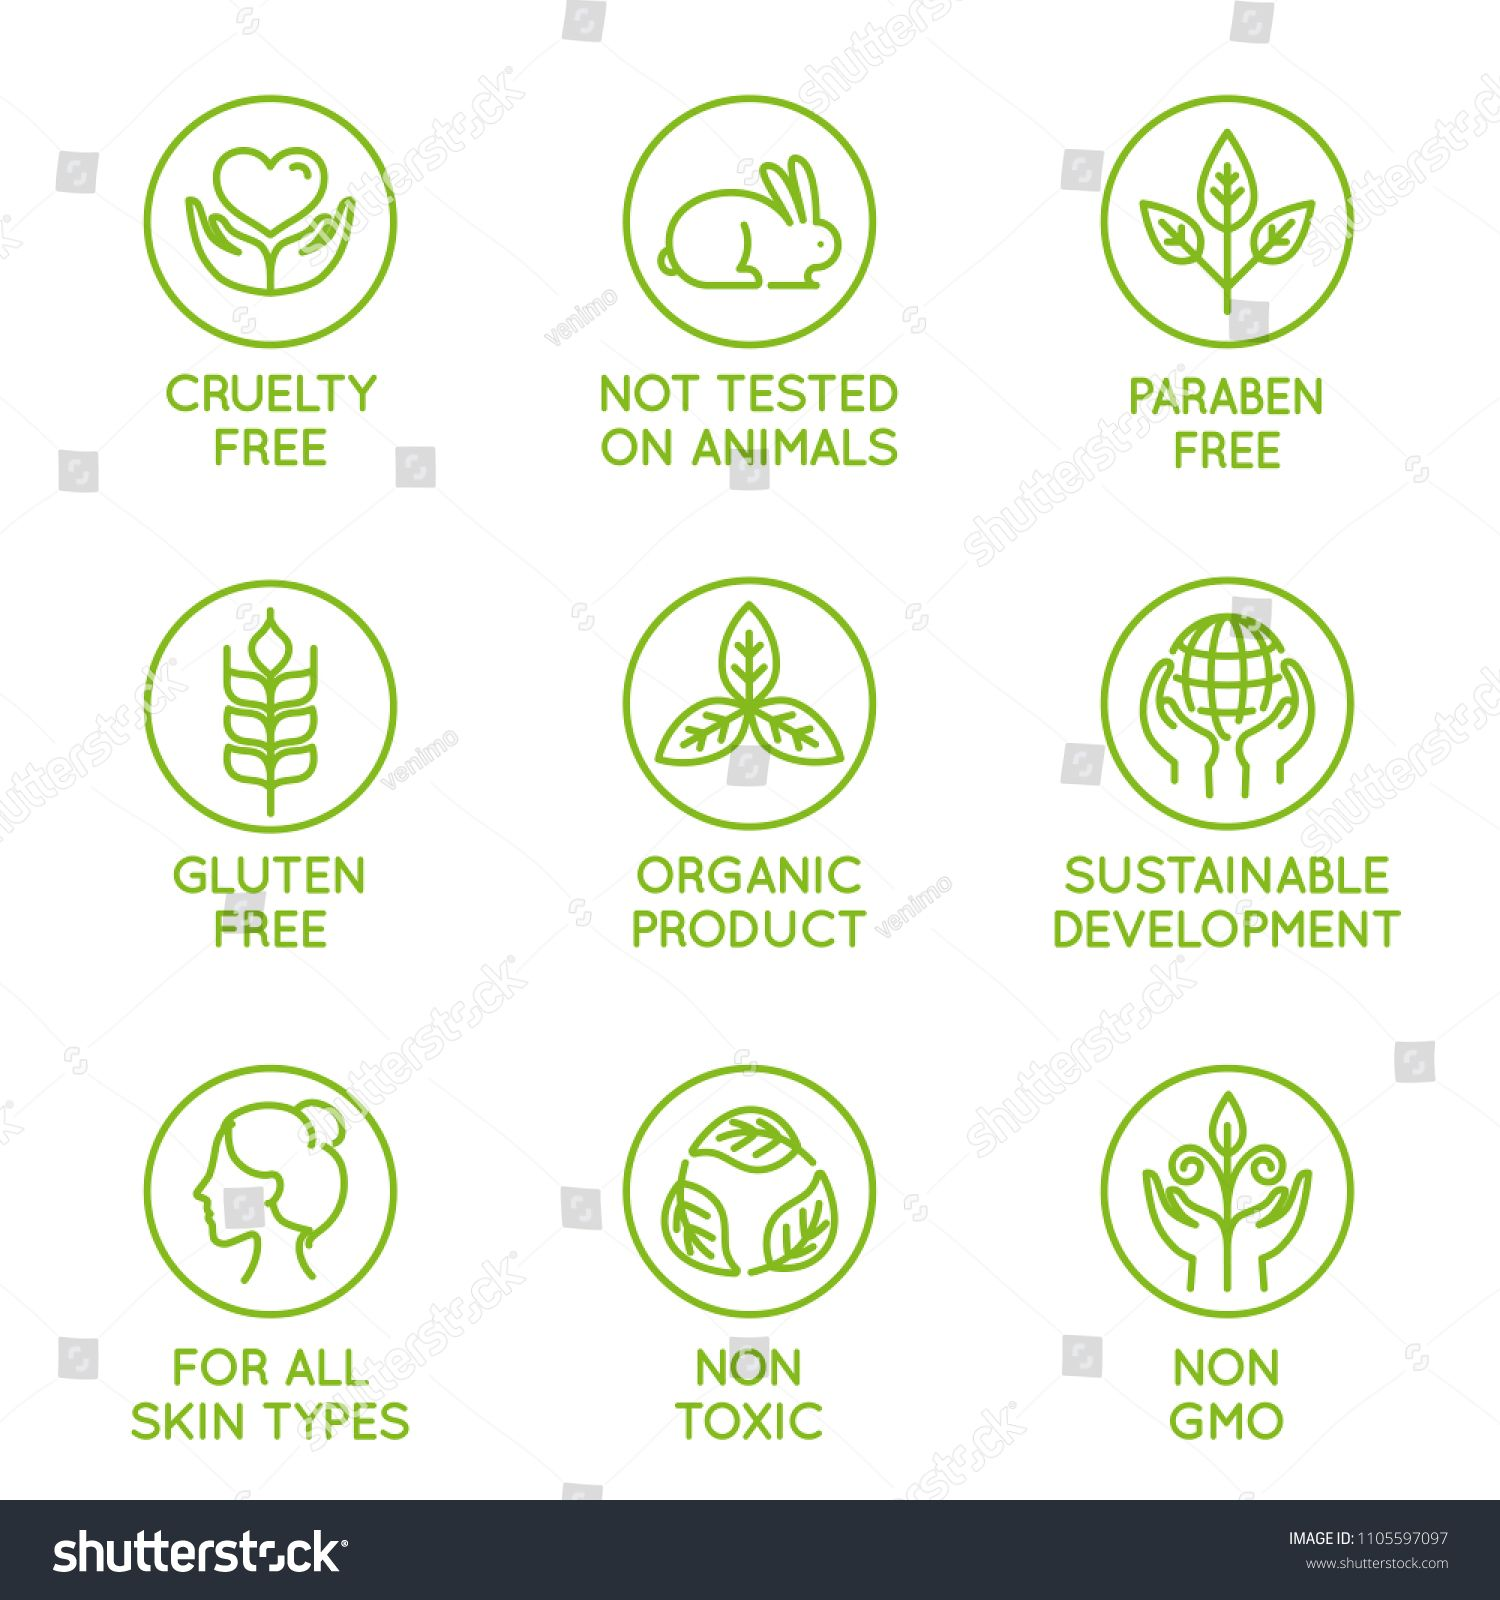 Vector Set Of Design Elements Logo Design Template Icons And Badges For Natural And Organic Cosmetic Paraben Free Products Logo Design Template Cosmetic Logo